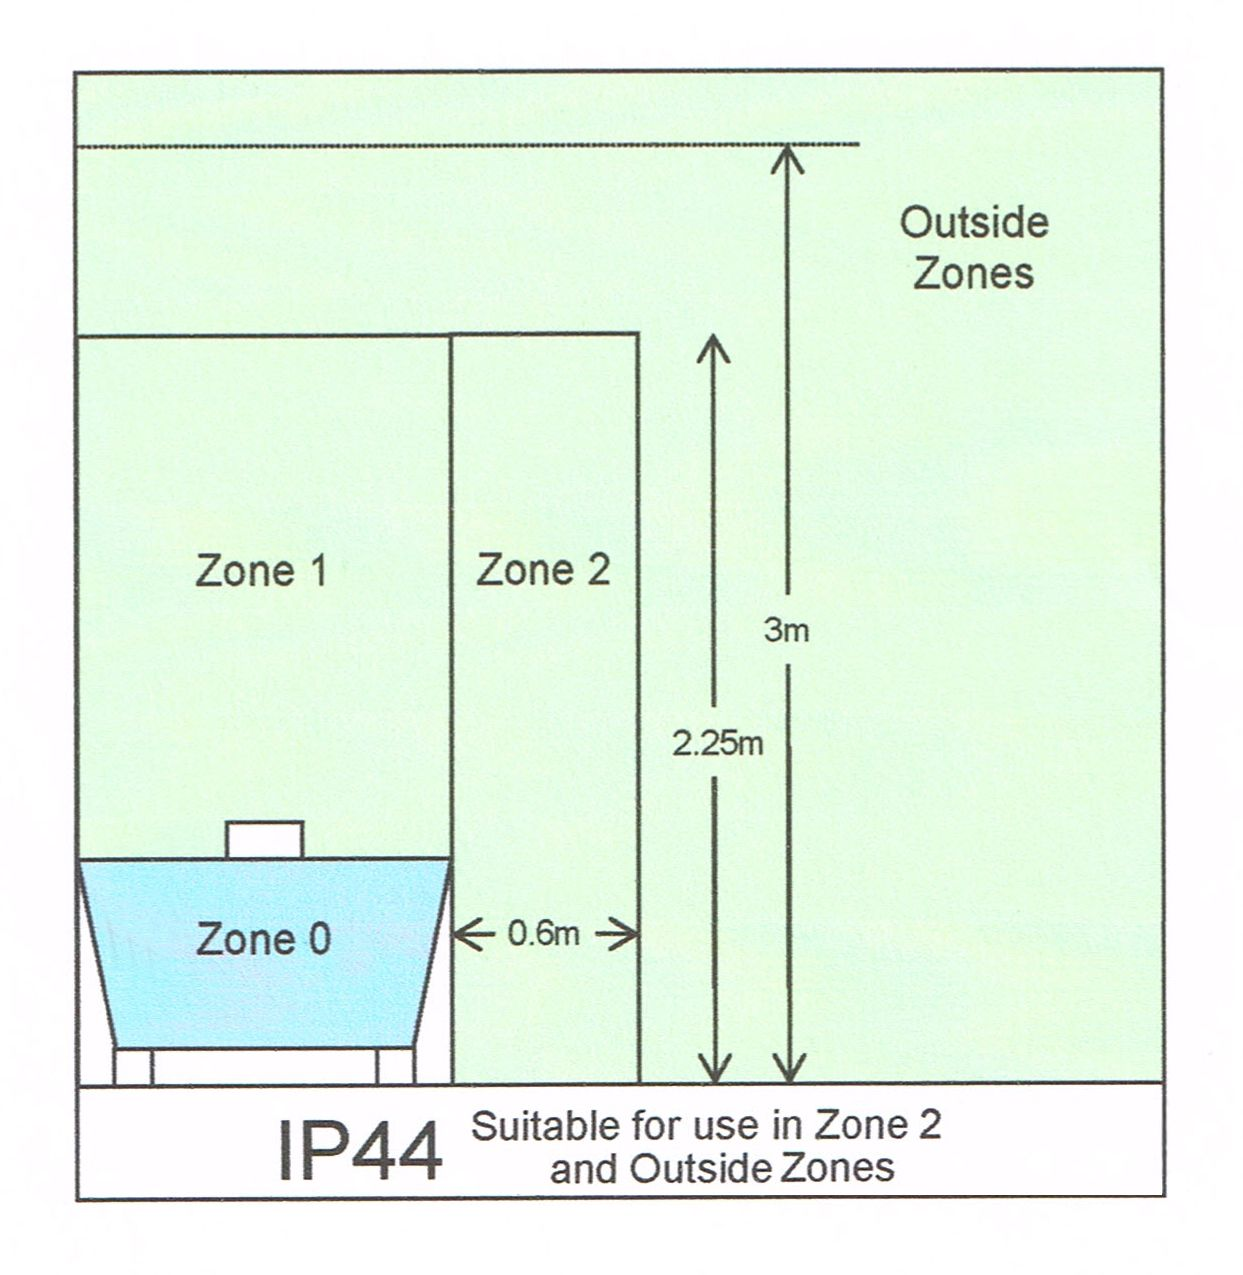 Bathroom Lights Zones ip44 bathroom zones - faqs | fritz fryer | bathroom lights | pinterest